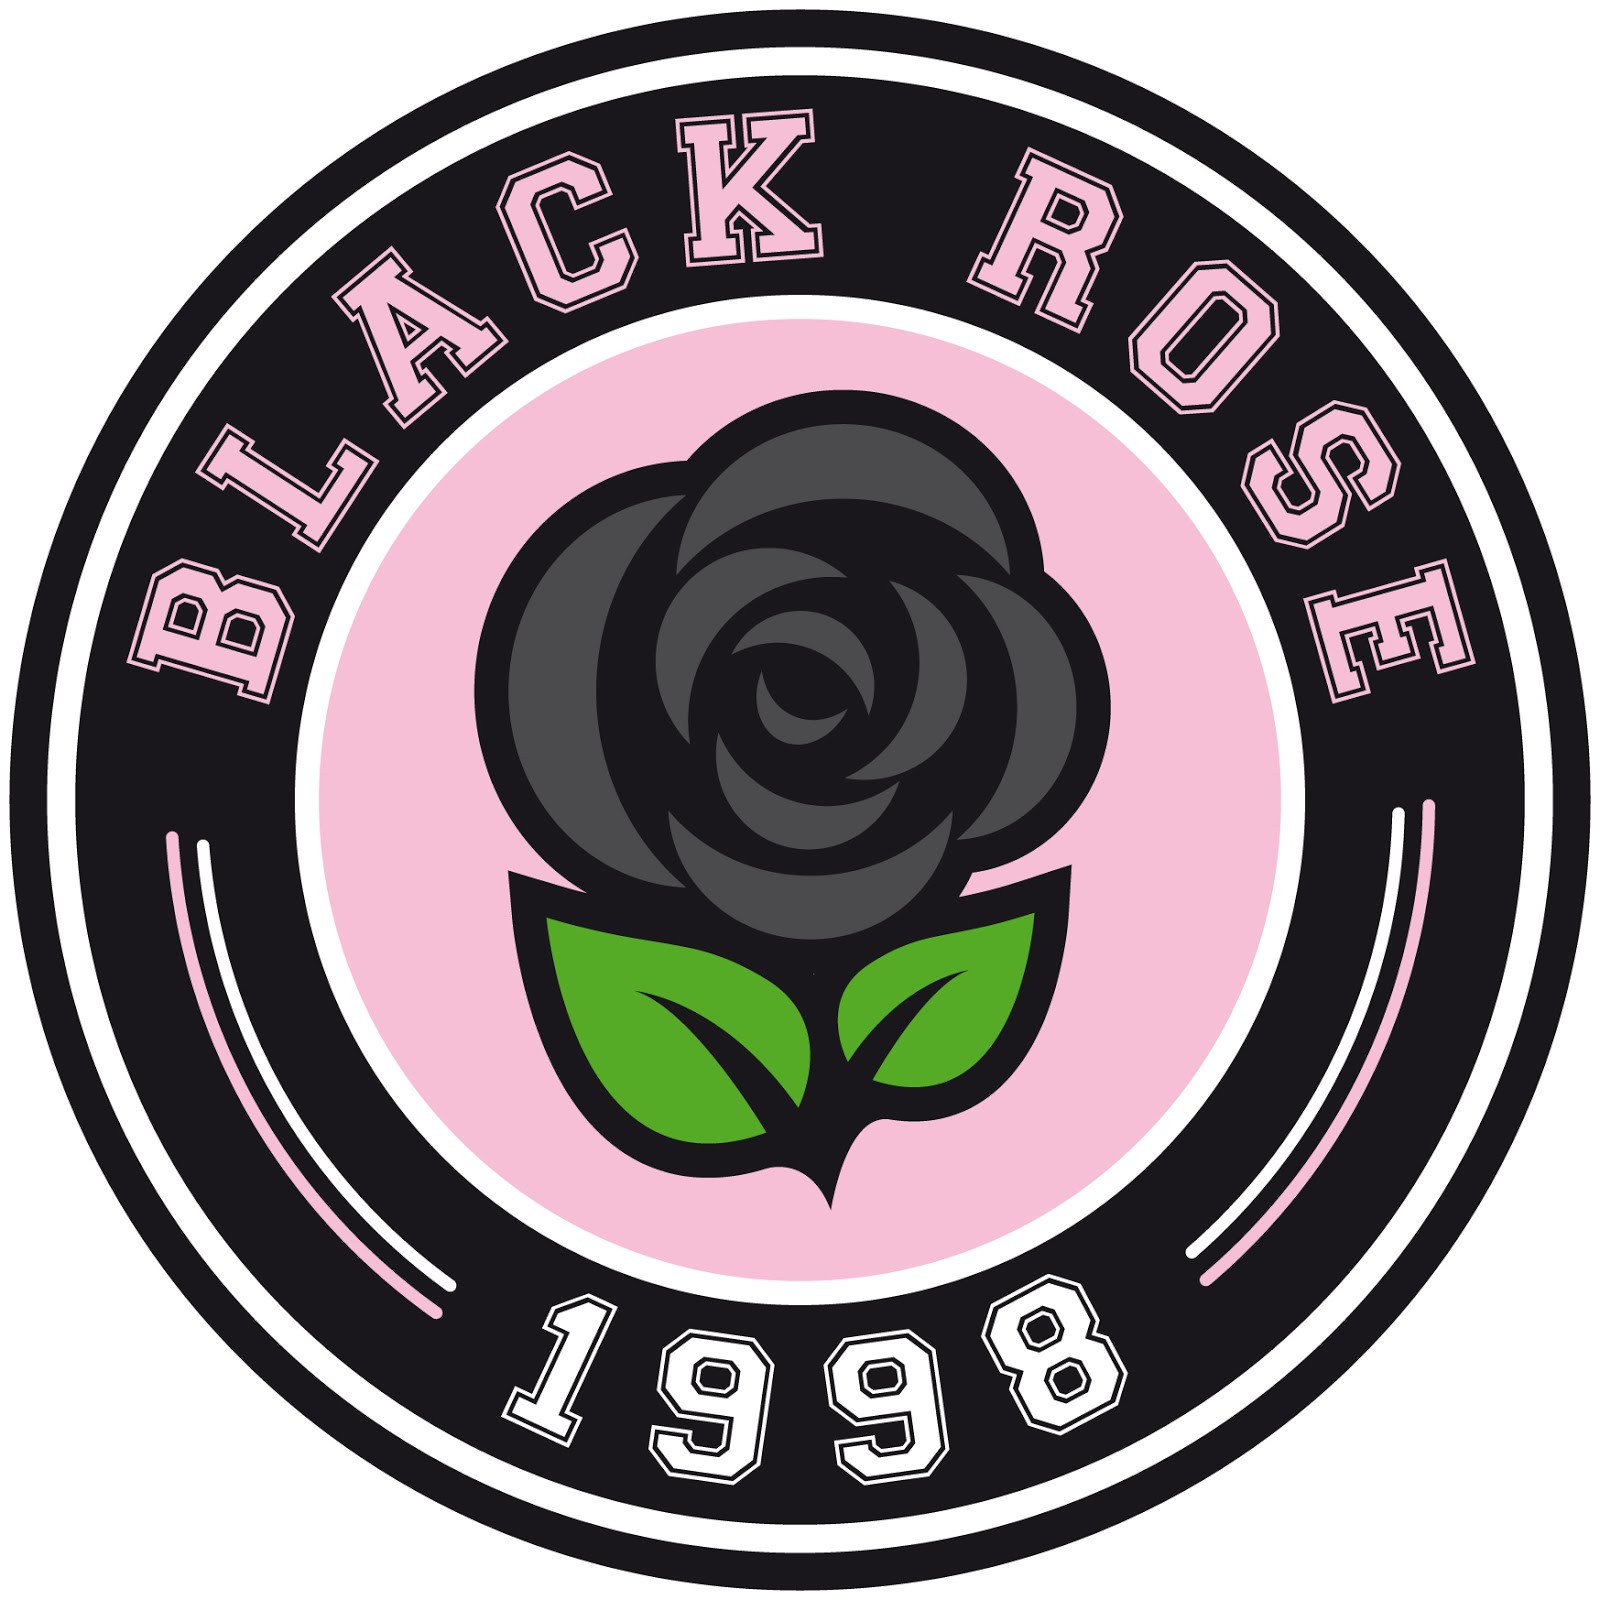 Il mio Club, i Black Rose '98